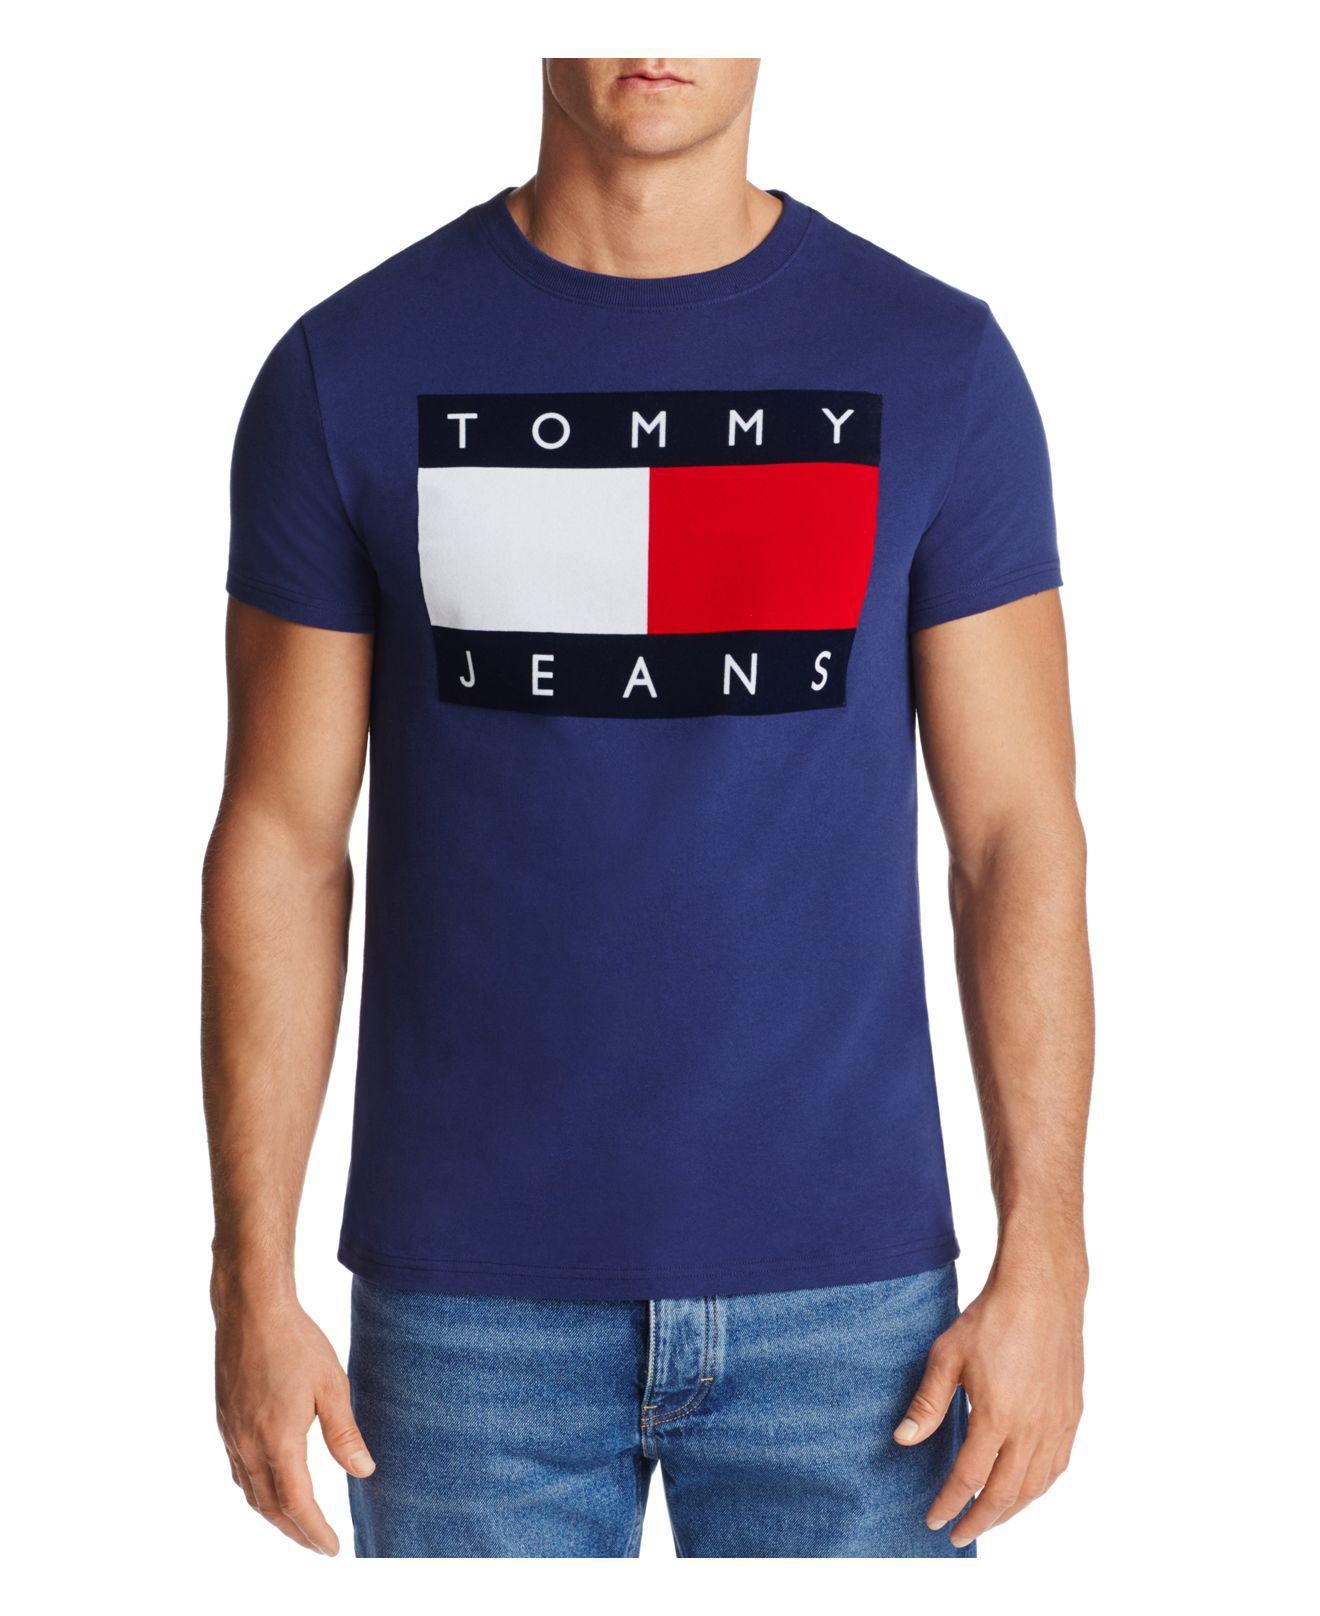 45db0265383b Tommy Hilfiger Graphic Logo Tee in Blue for Men - Lyst